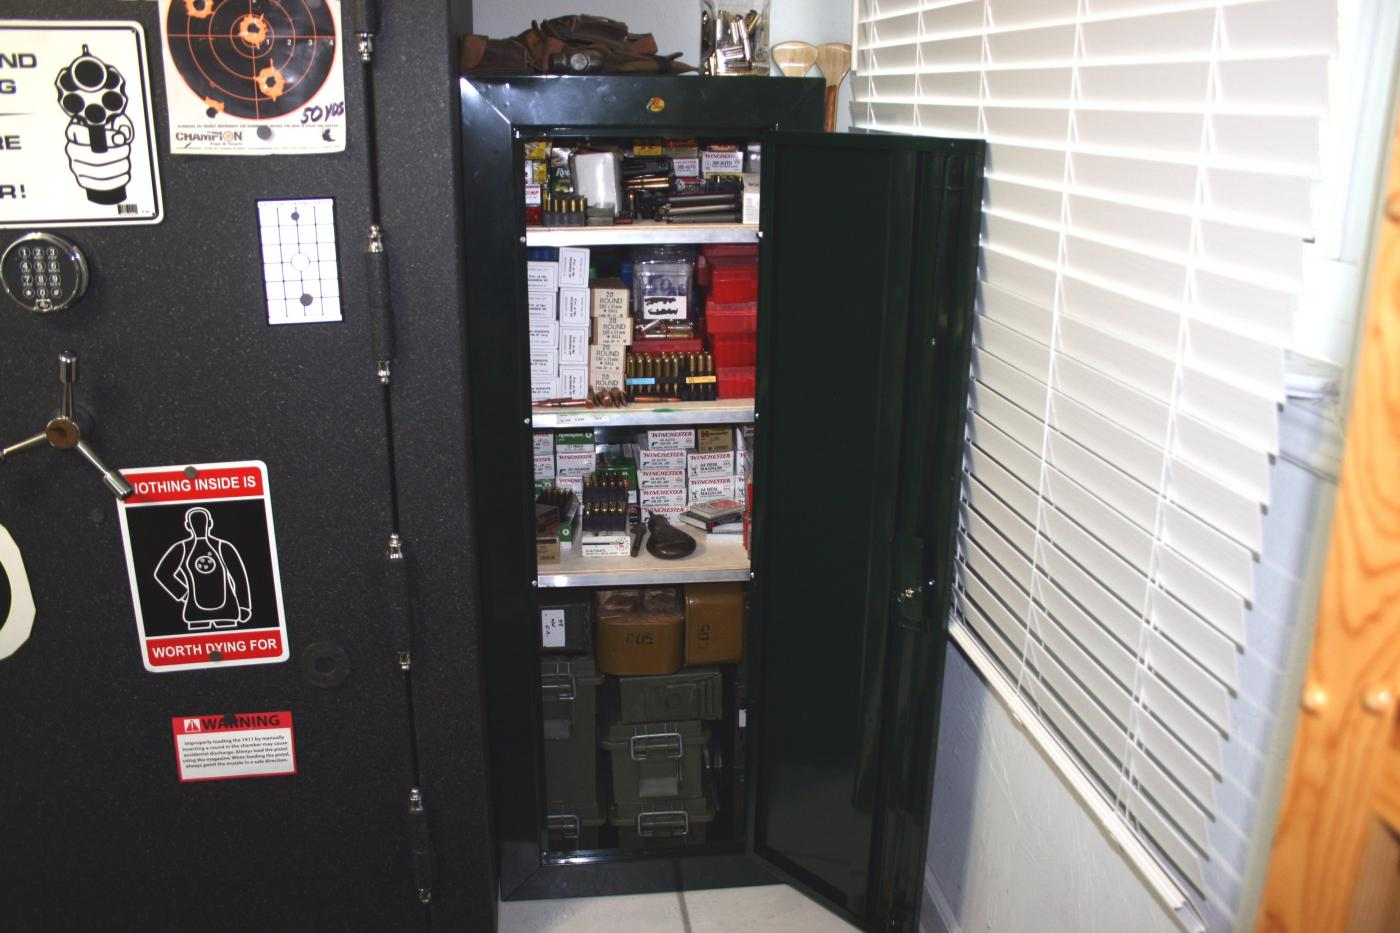 coolnupog.tk offers free shipping on Old Glory Gun Safes, Old Glory Gun Safes Gun Safe Products for Sale | coolnupog.tk Call () for any info related to Old Glory Gun Safes.